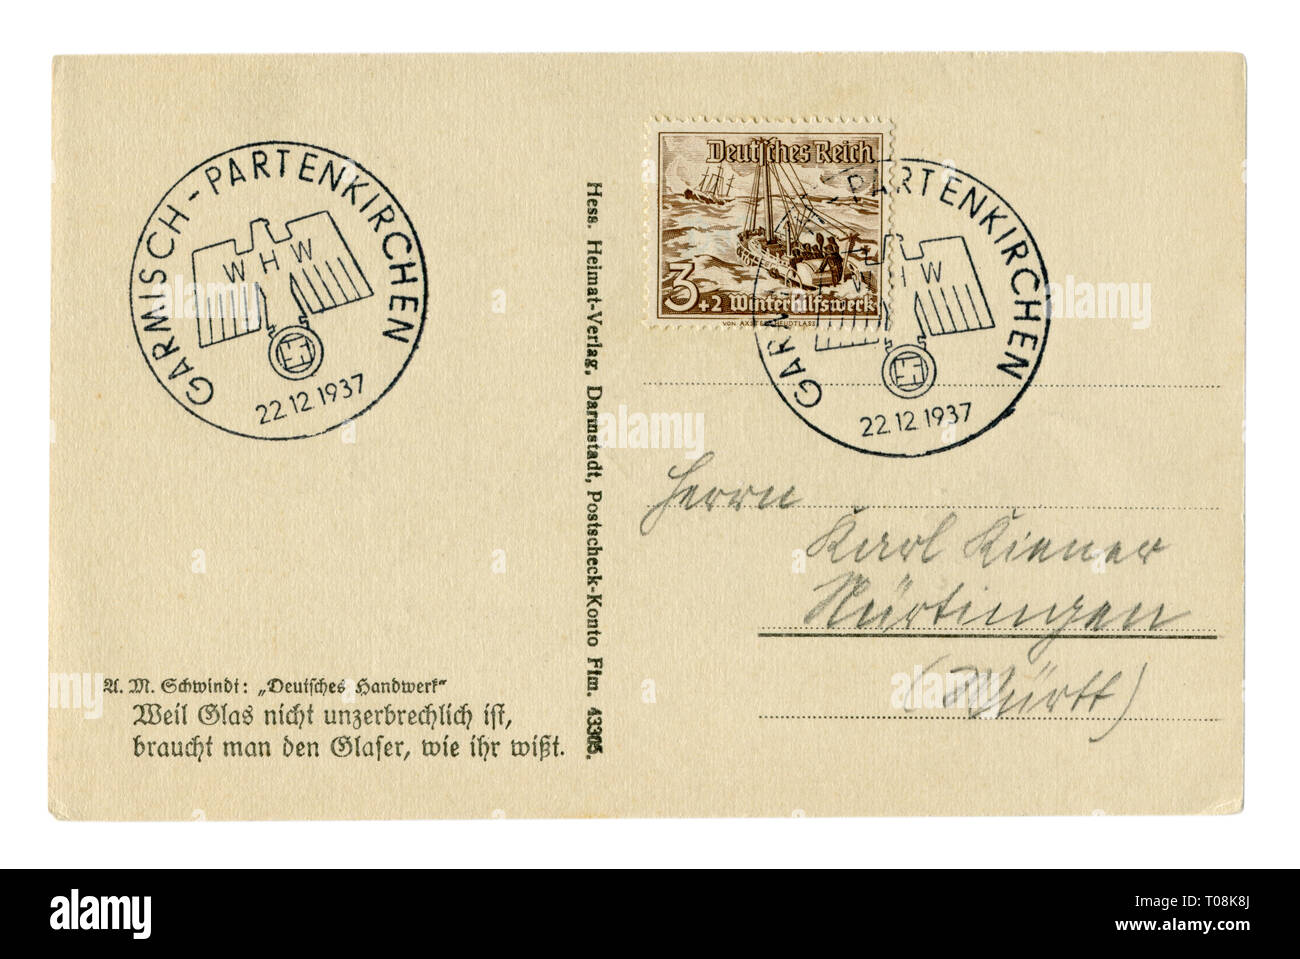 German historical postal card with stamp: Rescue boat 'Bremen', equipped with a diesel engine, designed to save people from sinking ships, WHW, reich - Stock Image